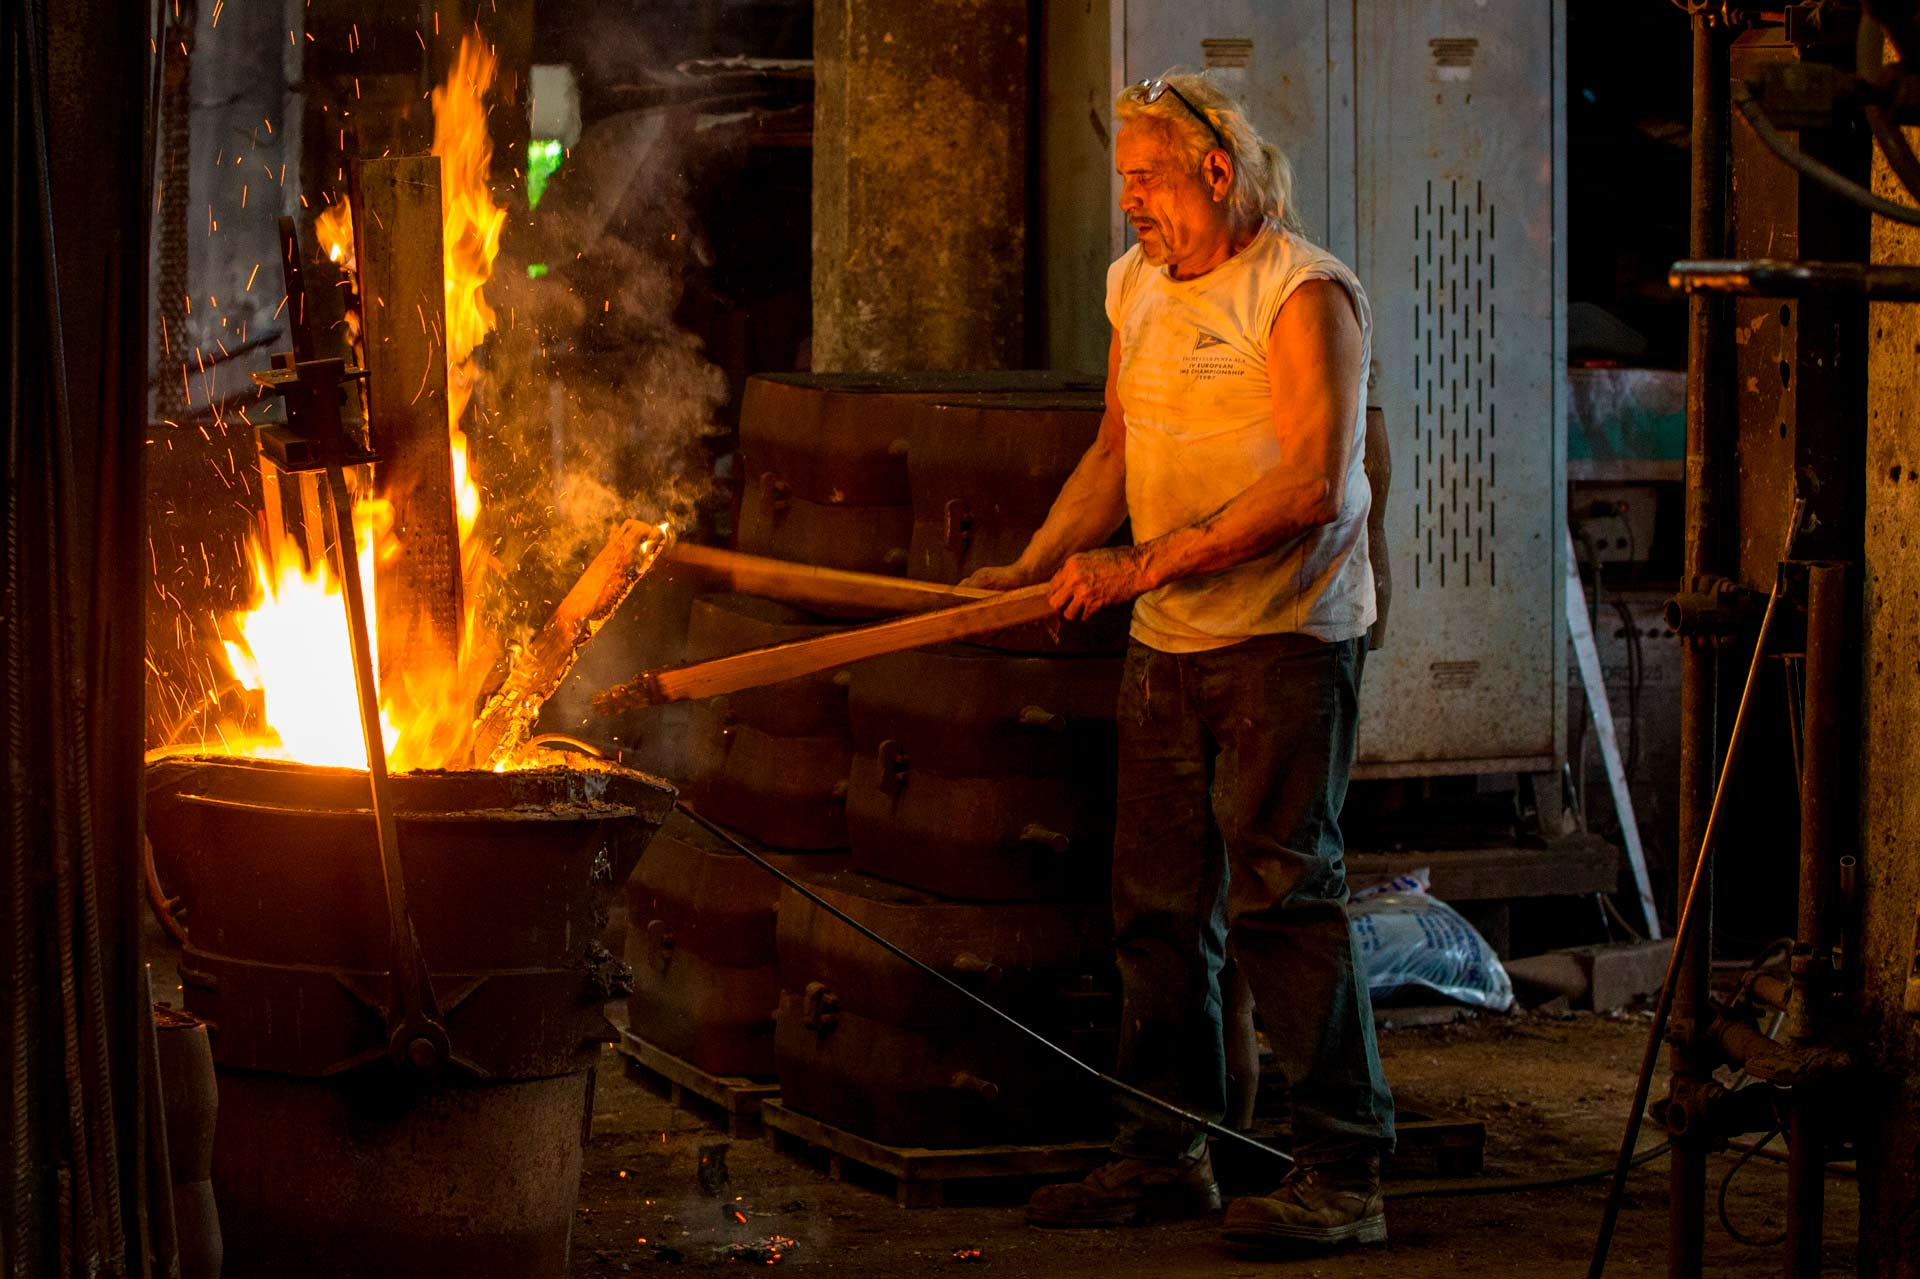 Very often work in the foundry is compared to work in the mine, in truth - says Omero - it is true that in the foundry you work in extreme conditions, but in complete safety, but it is also true that it is a job that gives many satisfactions.